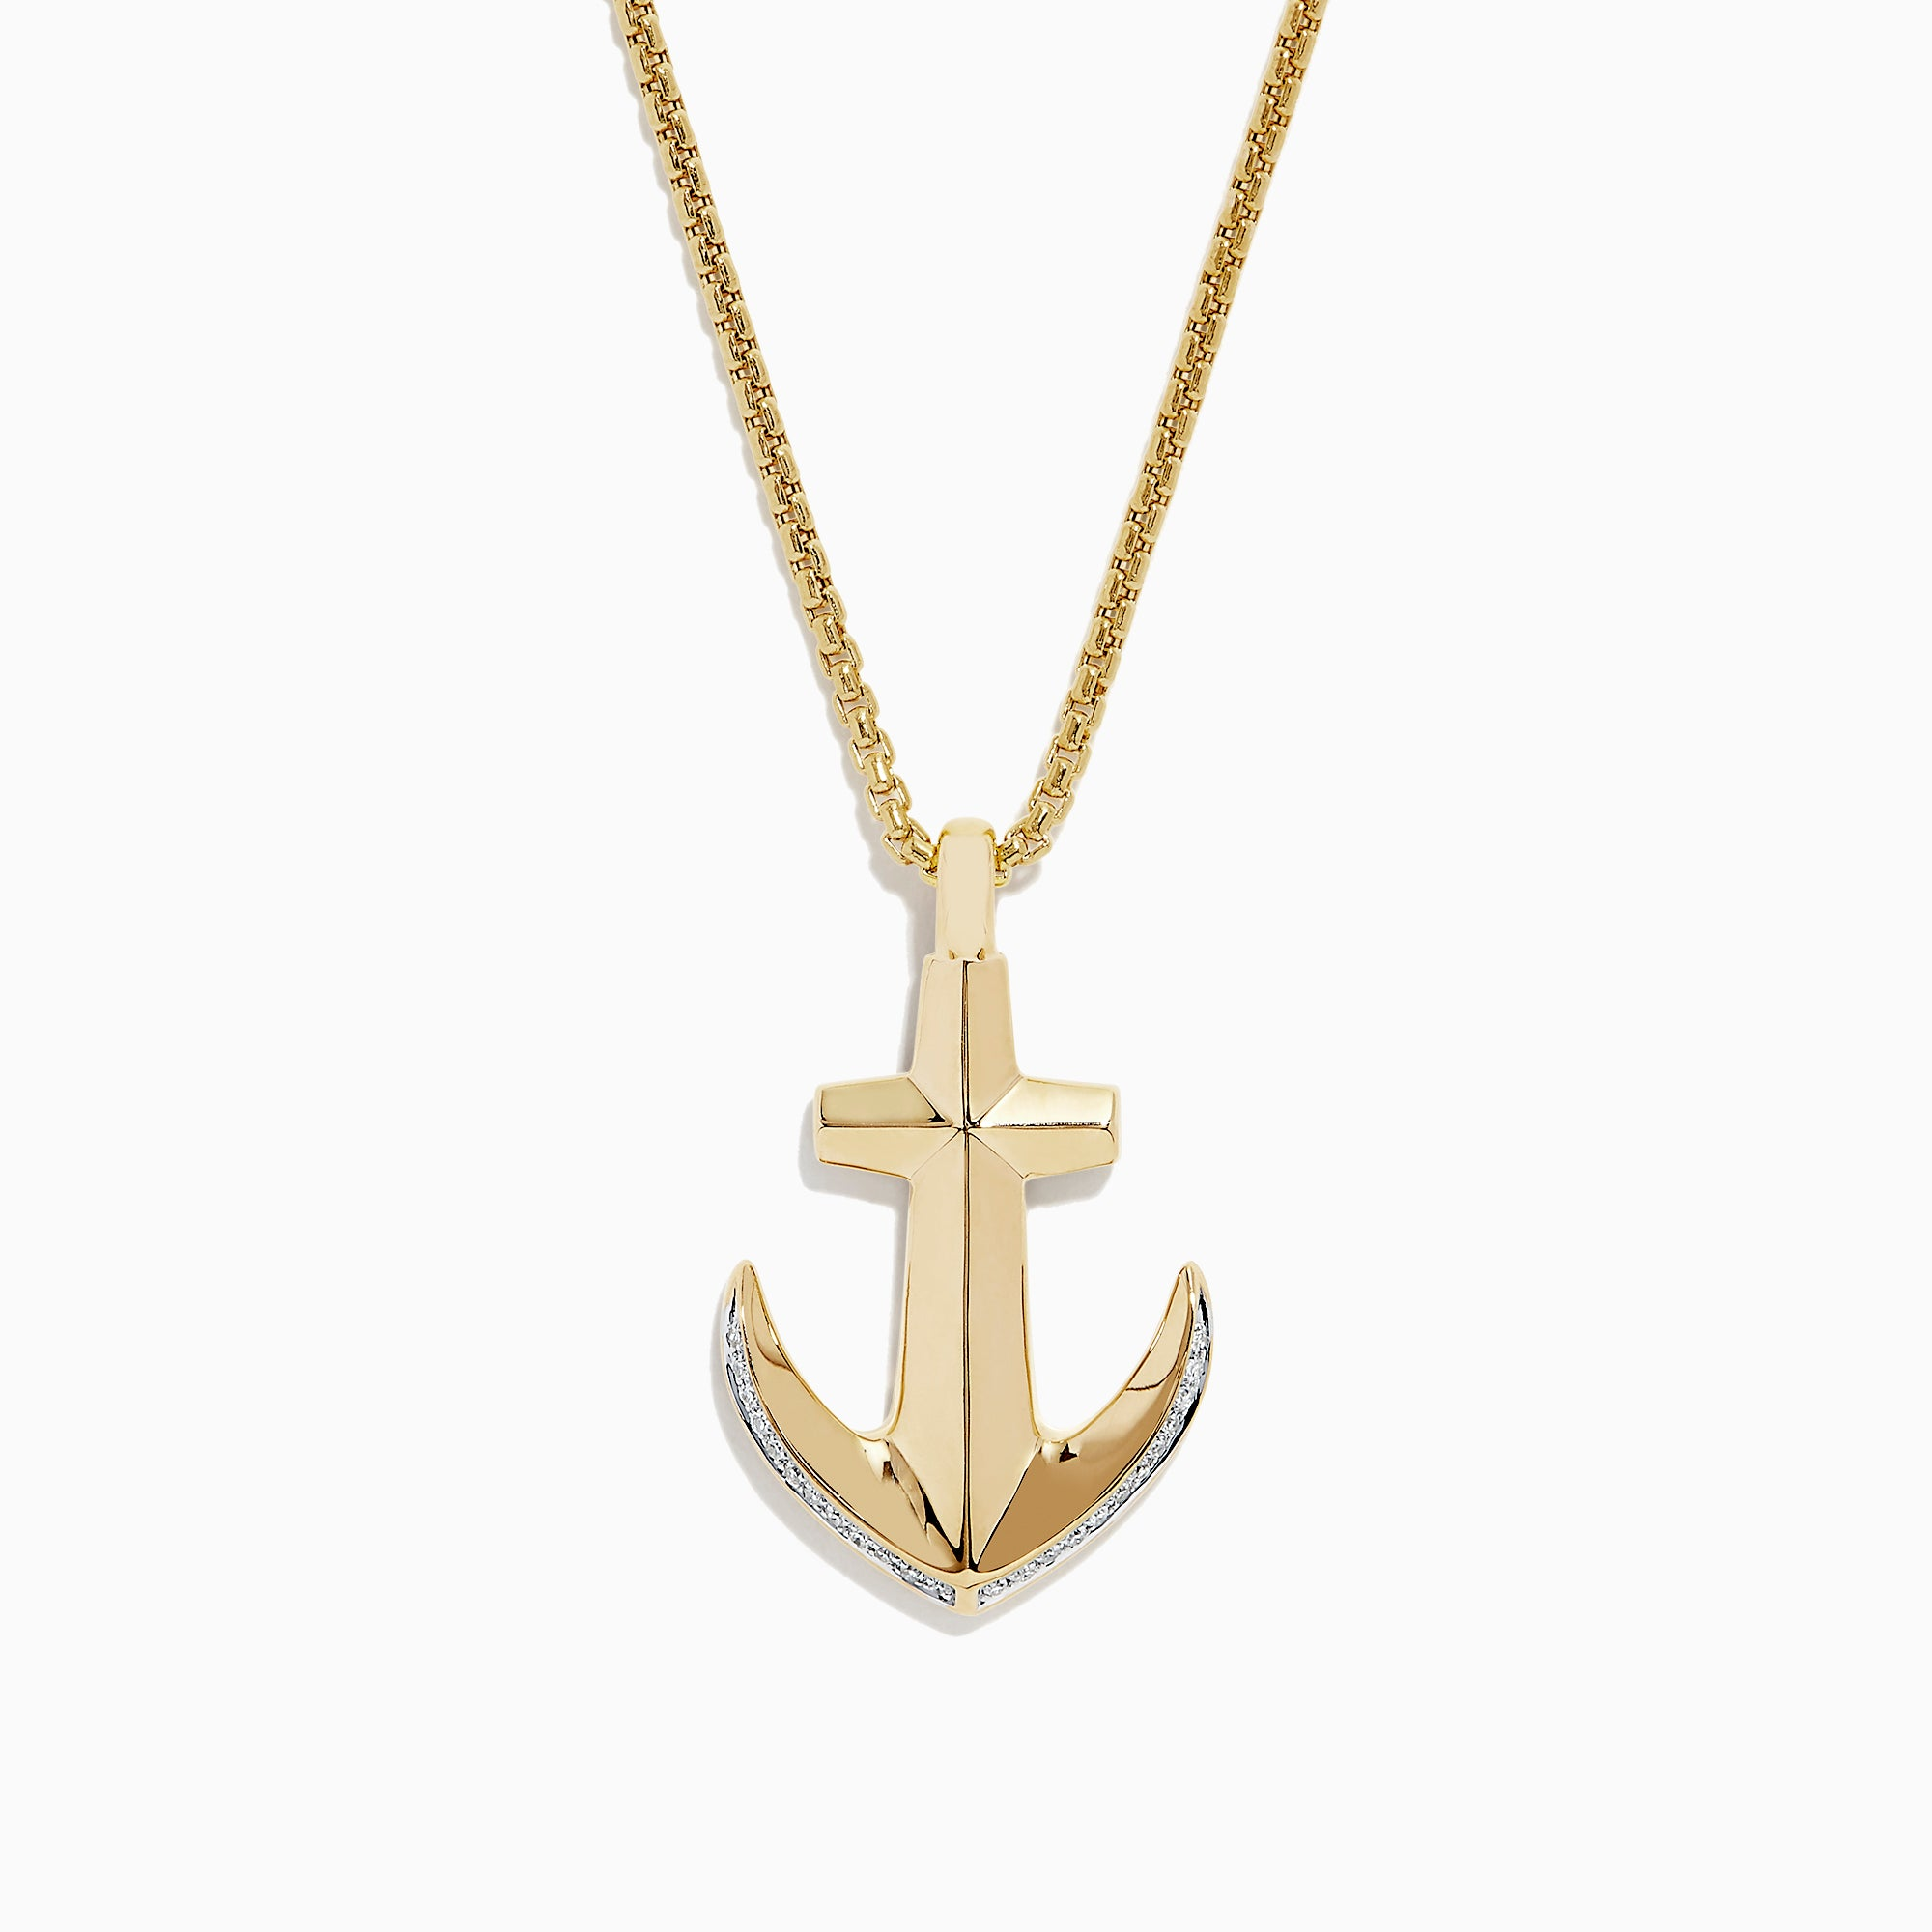 Effy Men's 14K Yellow Gold Diamond Anchor Pendant, 0.11 TCW